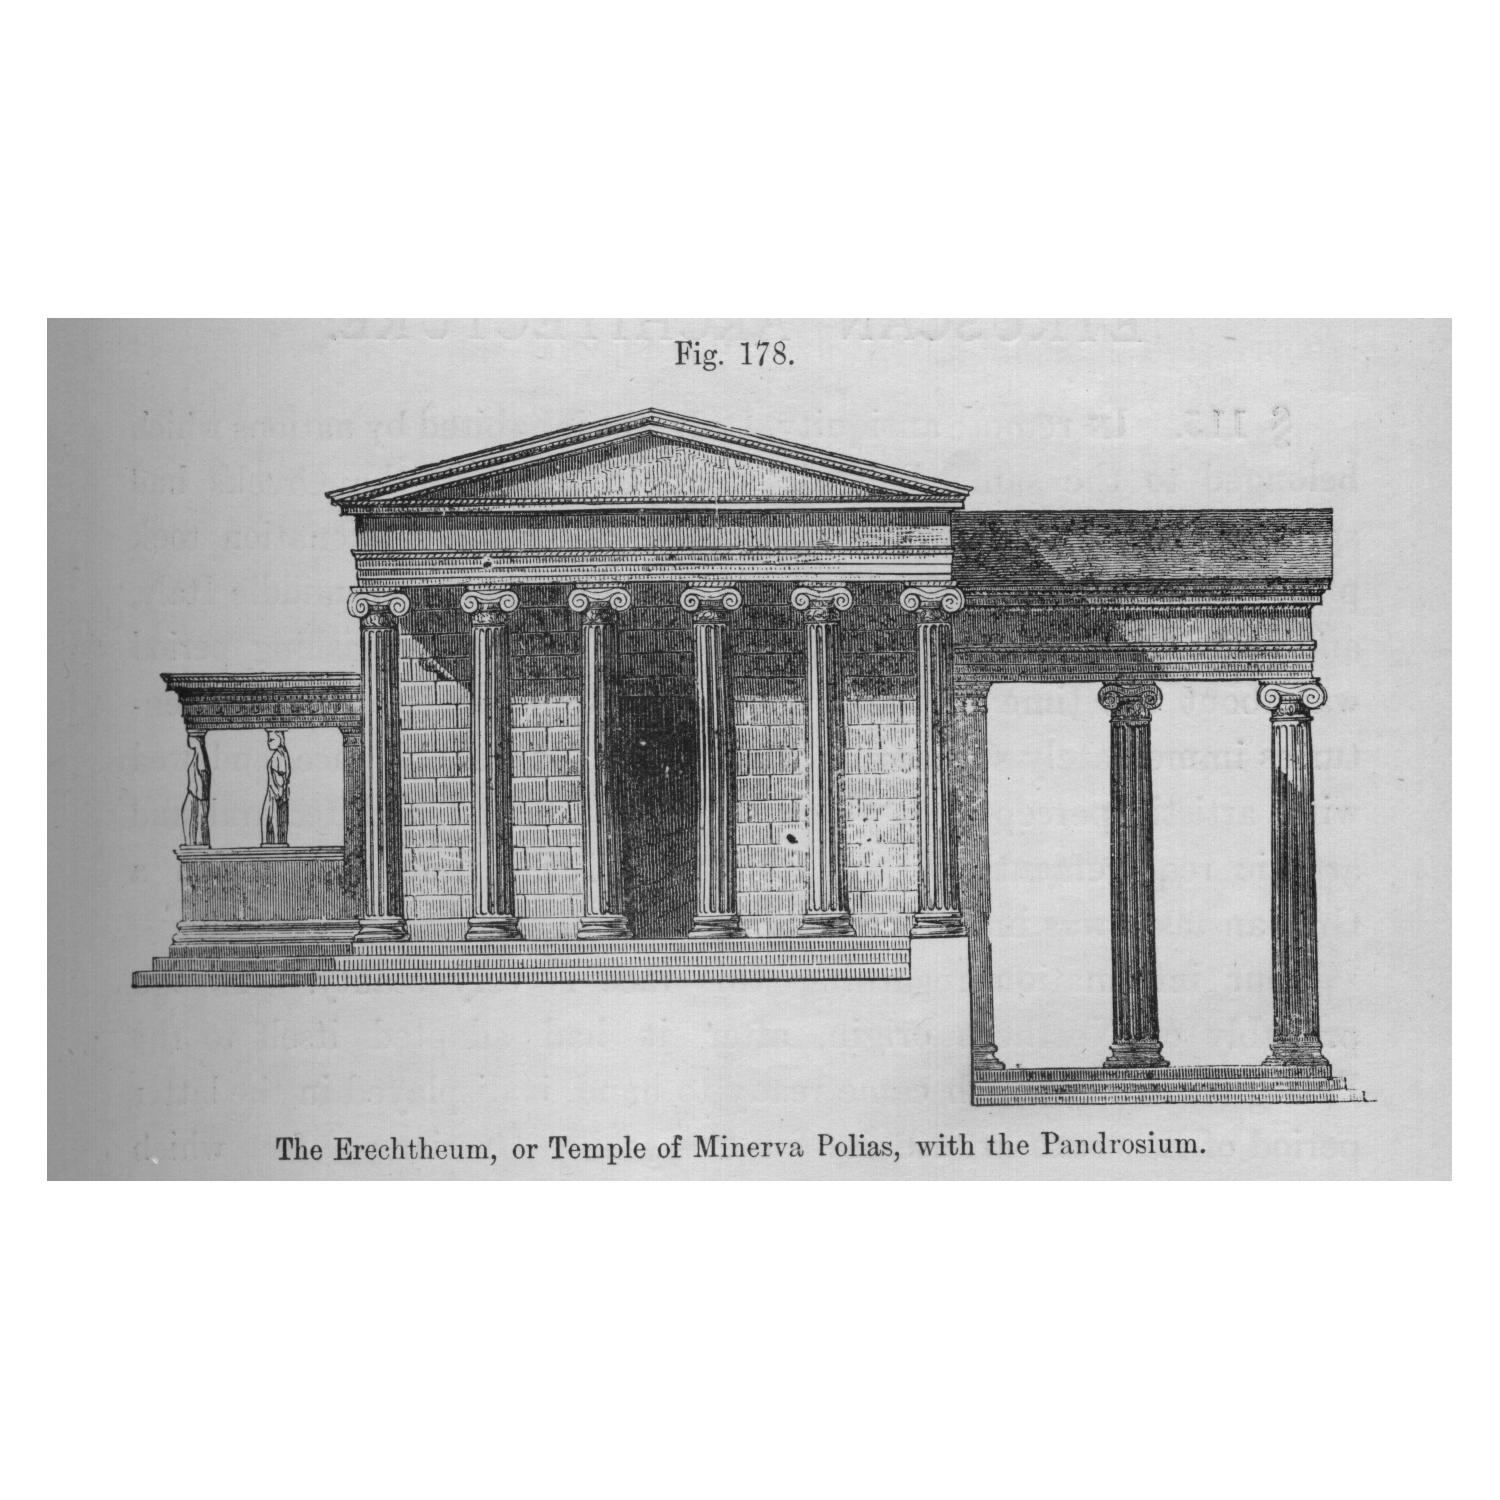 An architectural rendering of the Erechtheum in Athens, which provided inspiration for the ionic columns, caryatid porches and overall design of the Field Museum. From the 1809 book A Handbook of Architectural Styles.